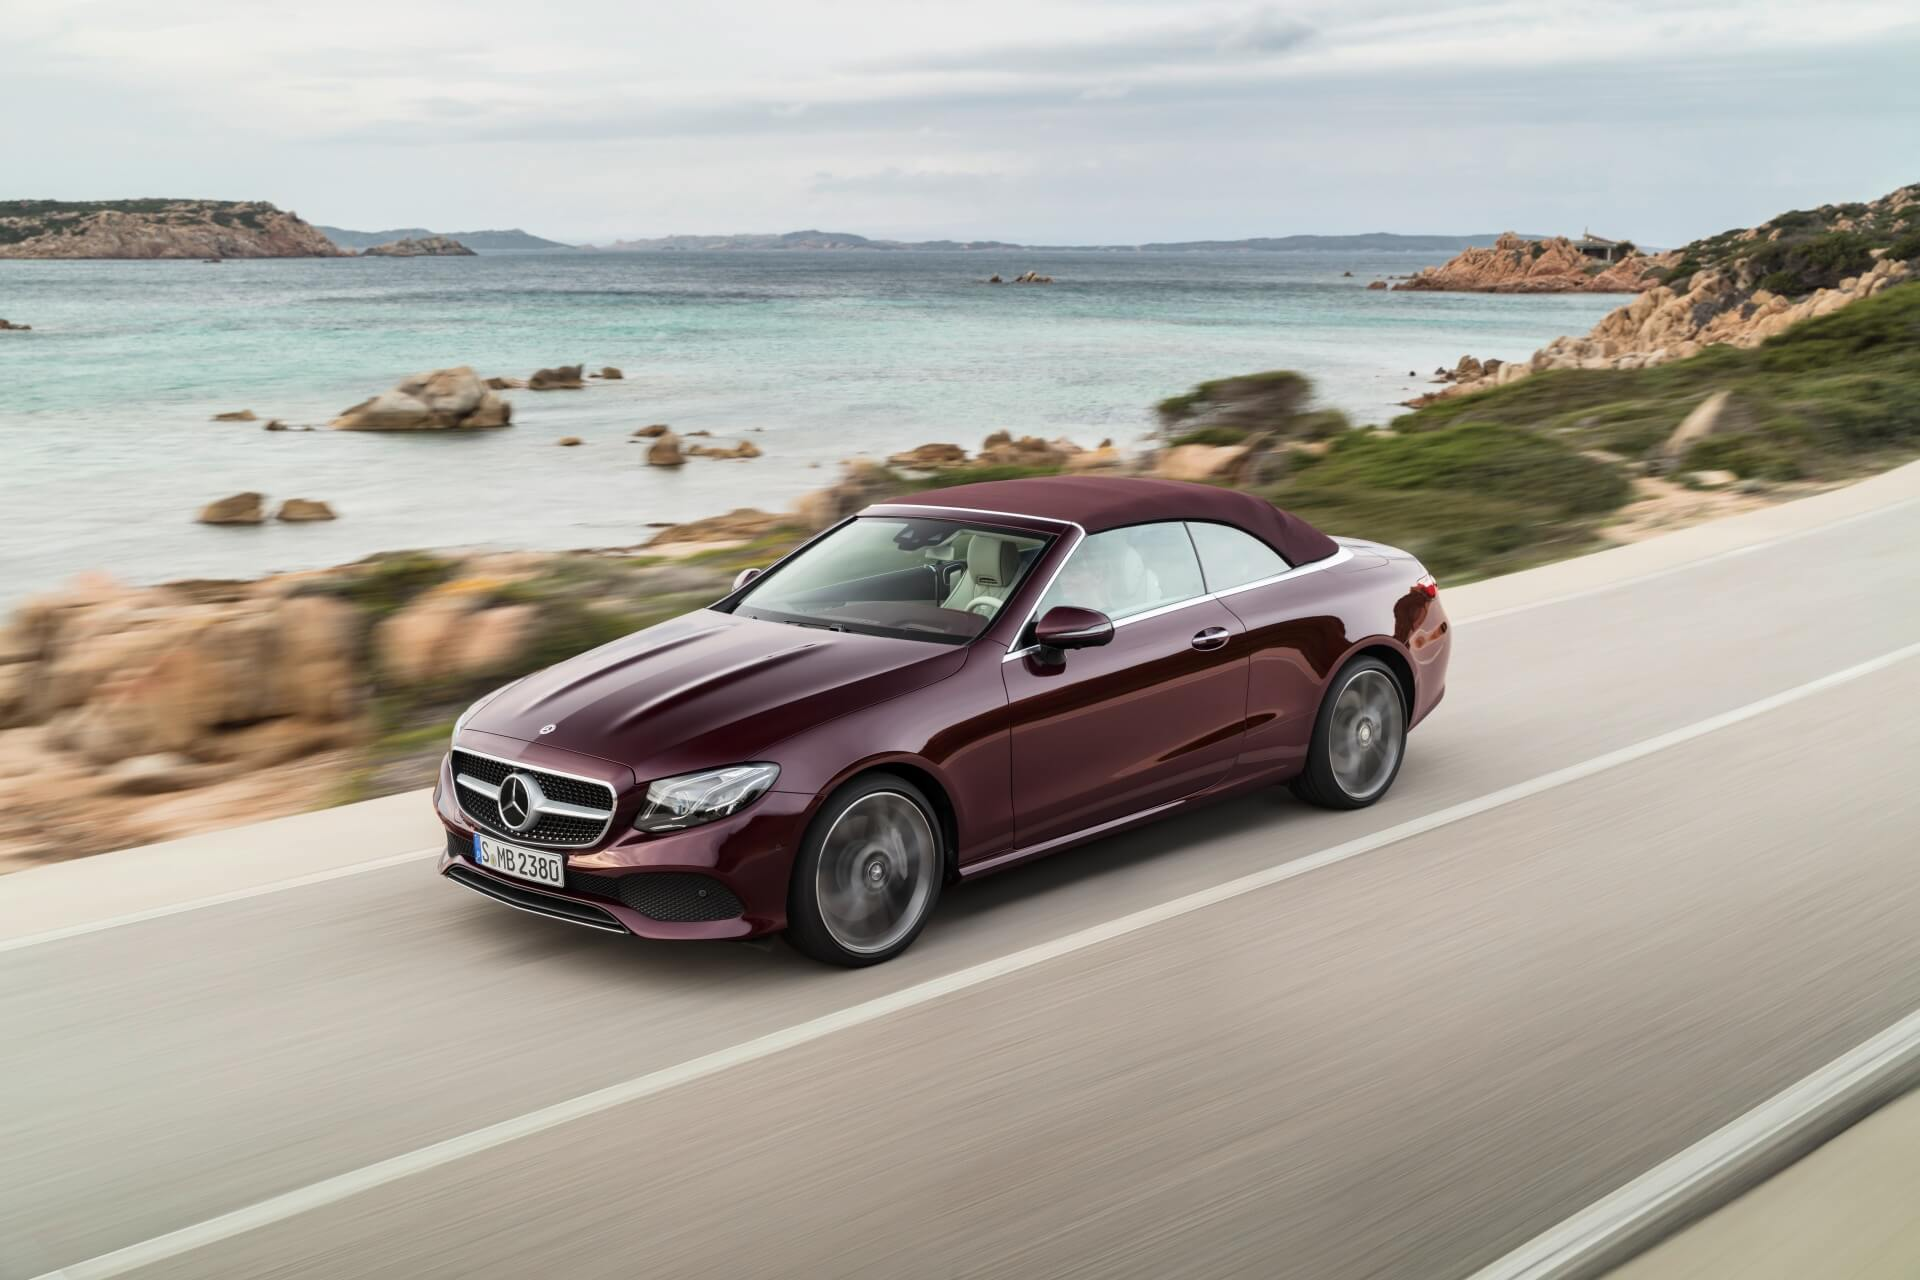 Mercedes-Benz E-Klasse Cabriolet; 2017; Exterieur: rubellitrot metallic, 25th Anniversary Edtion, Stoffverdeck dunkelrot